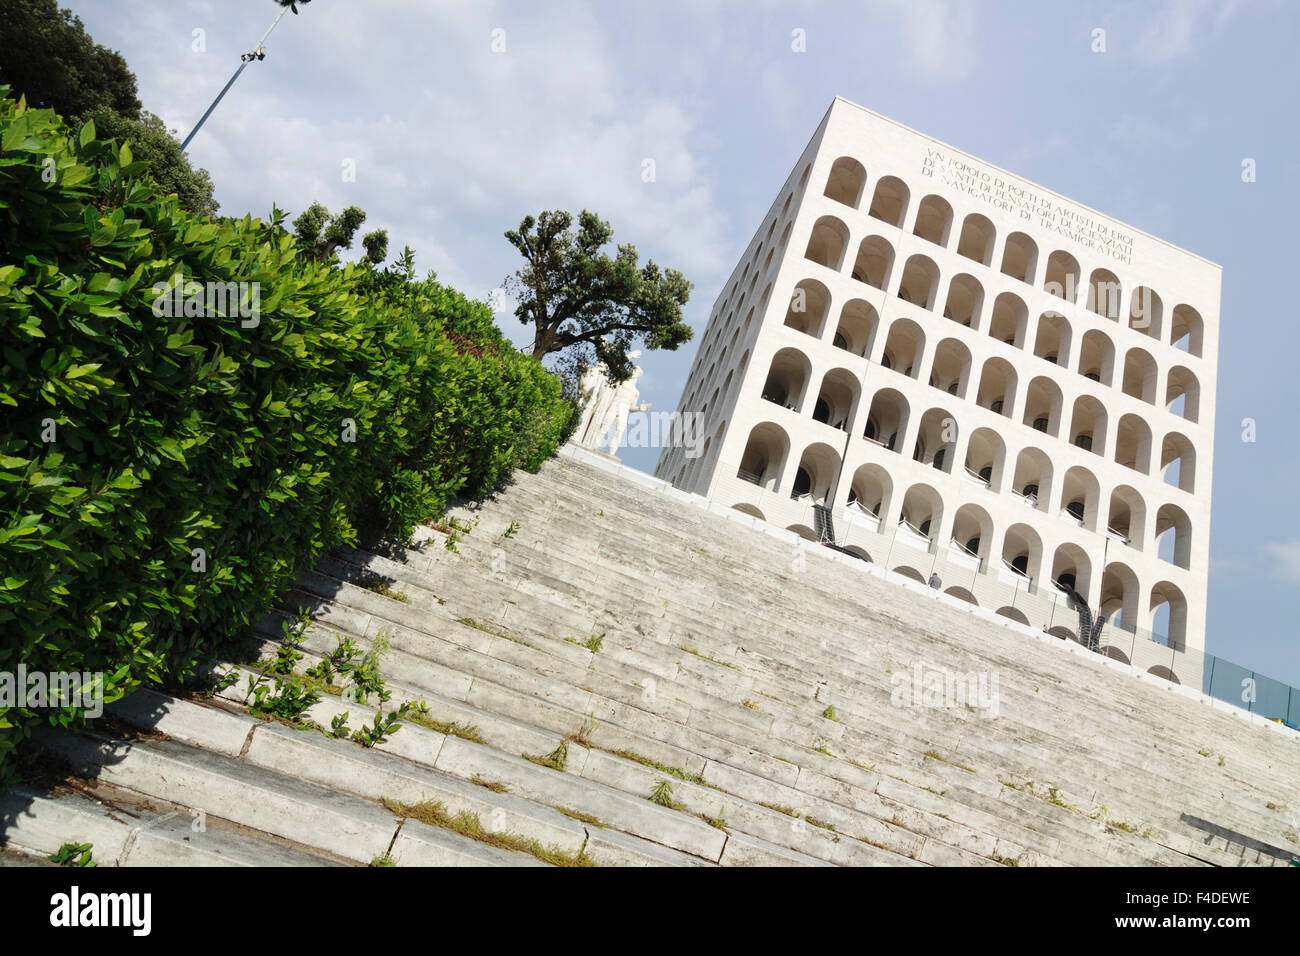 Palazzo della Civilta, an icon of Fascist architecture. EUR district, Rome, Italy - Stock Image